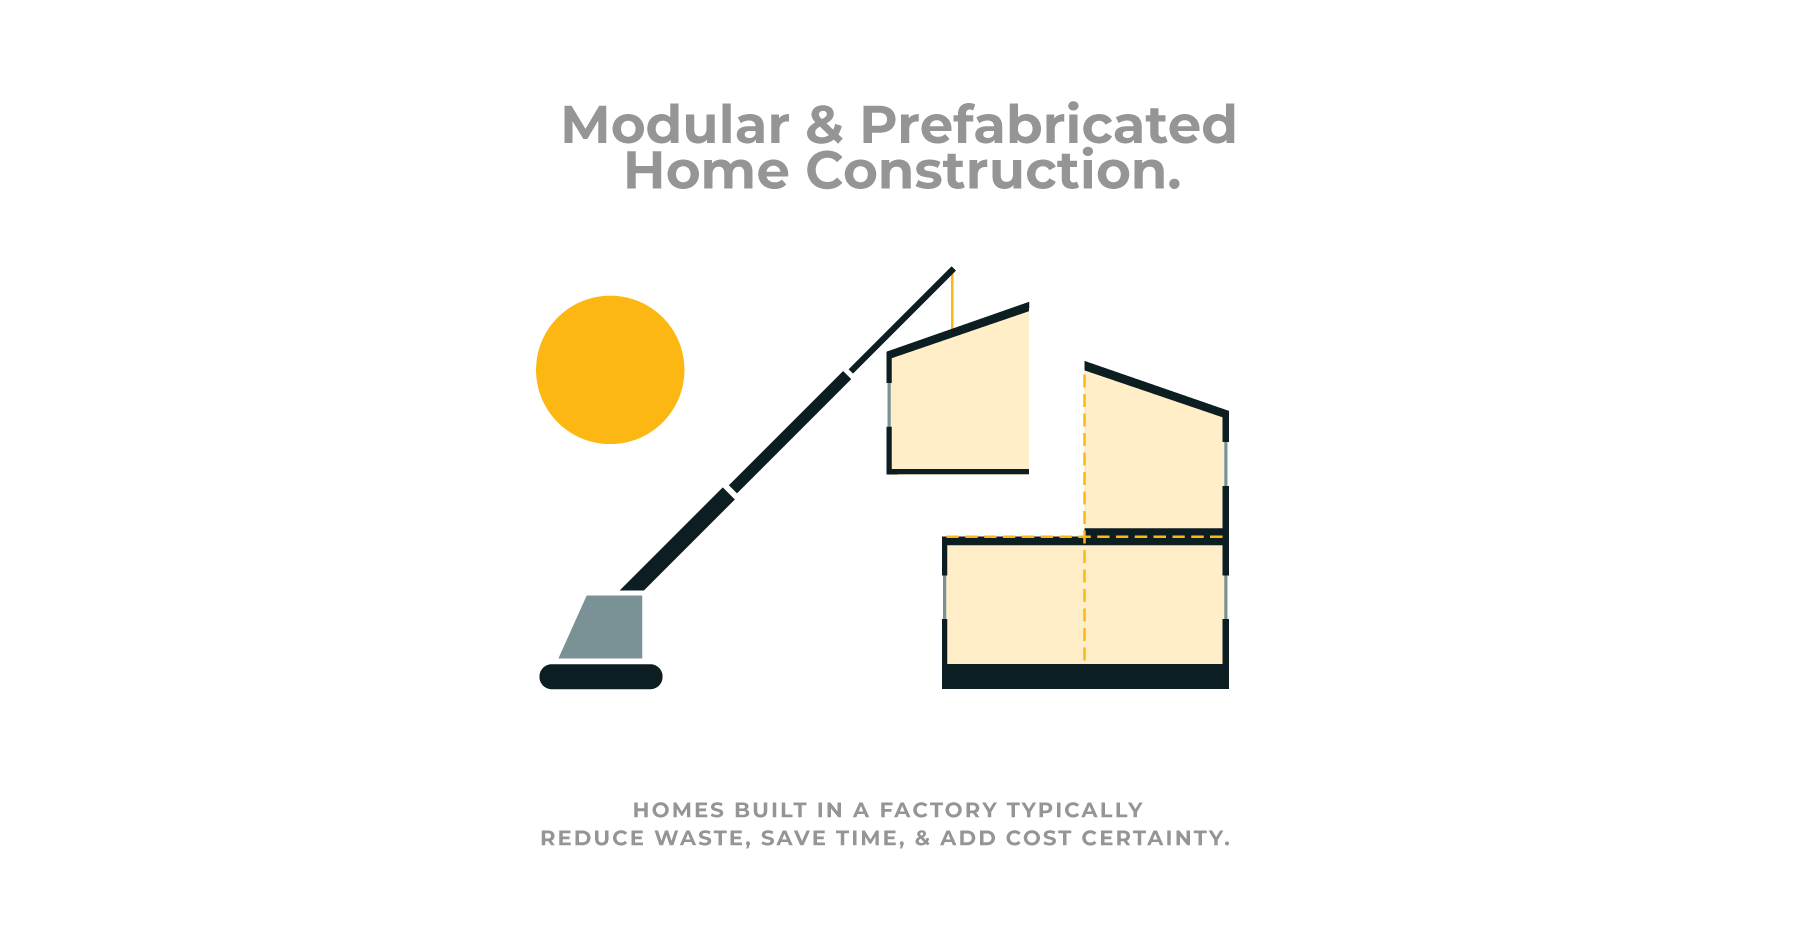 Sustainability benefits and costs of modular home construction